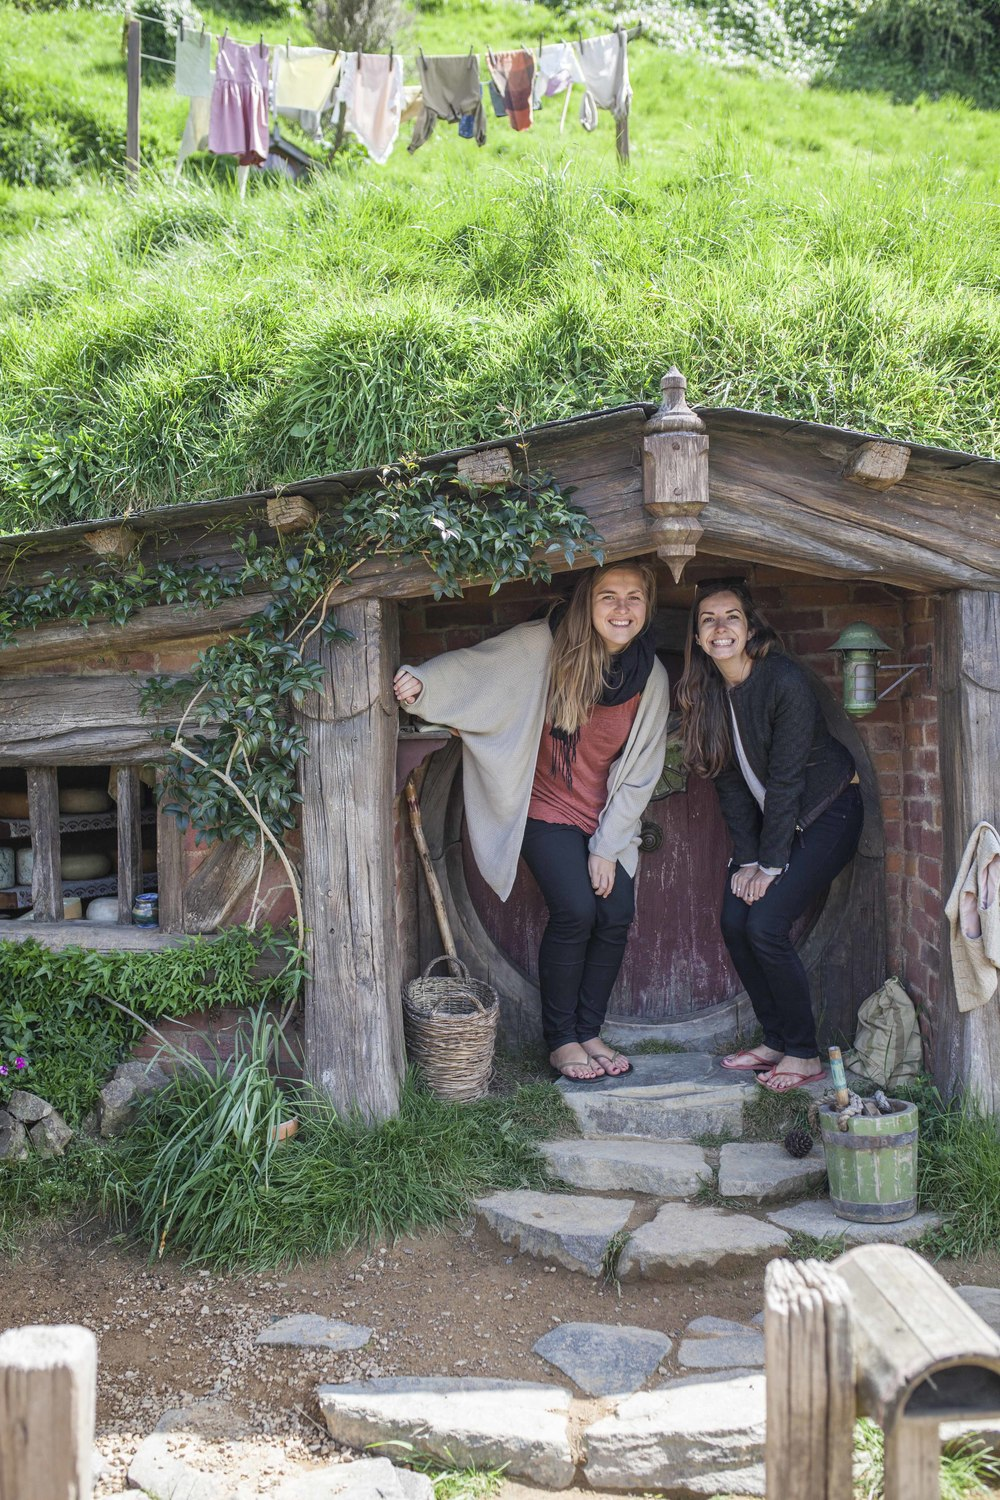 069Toronto Lifestyle Photographers -Hobbiton, New Zealand - Jono & Laynie Co.jpg